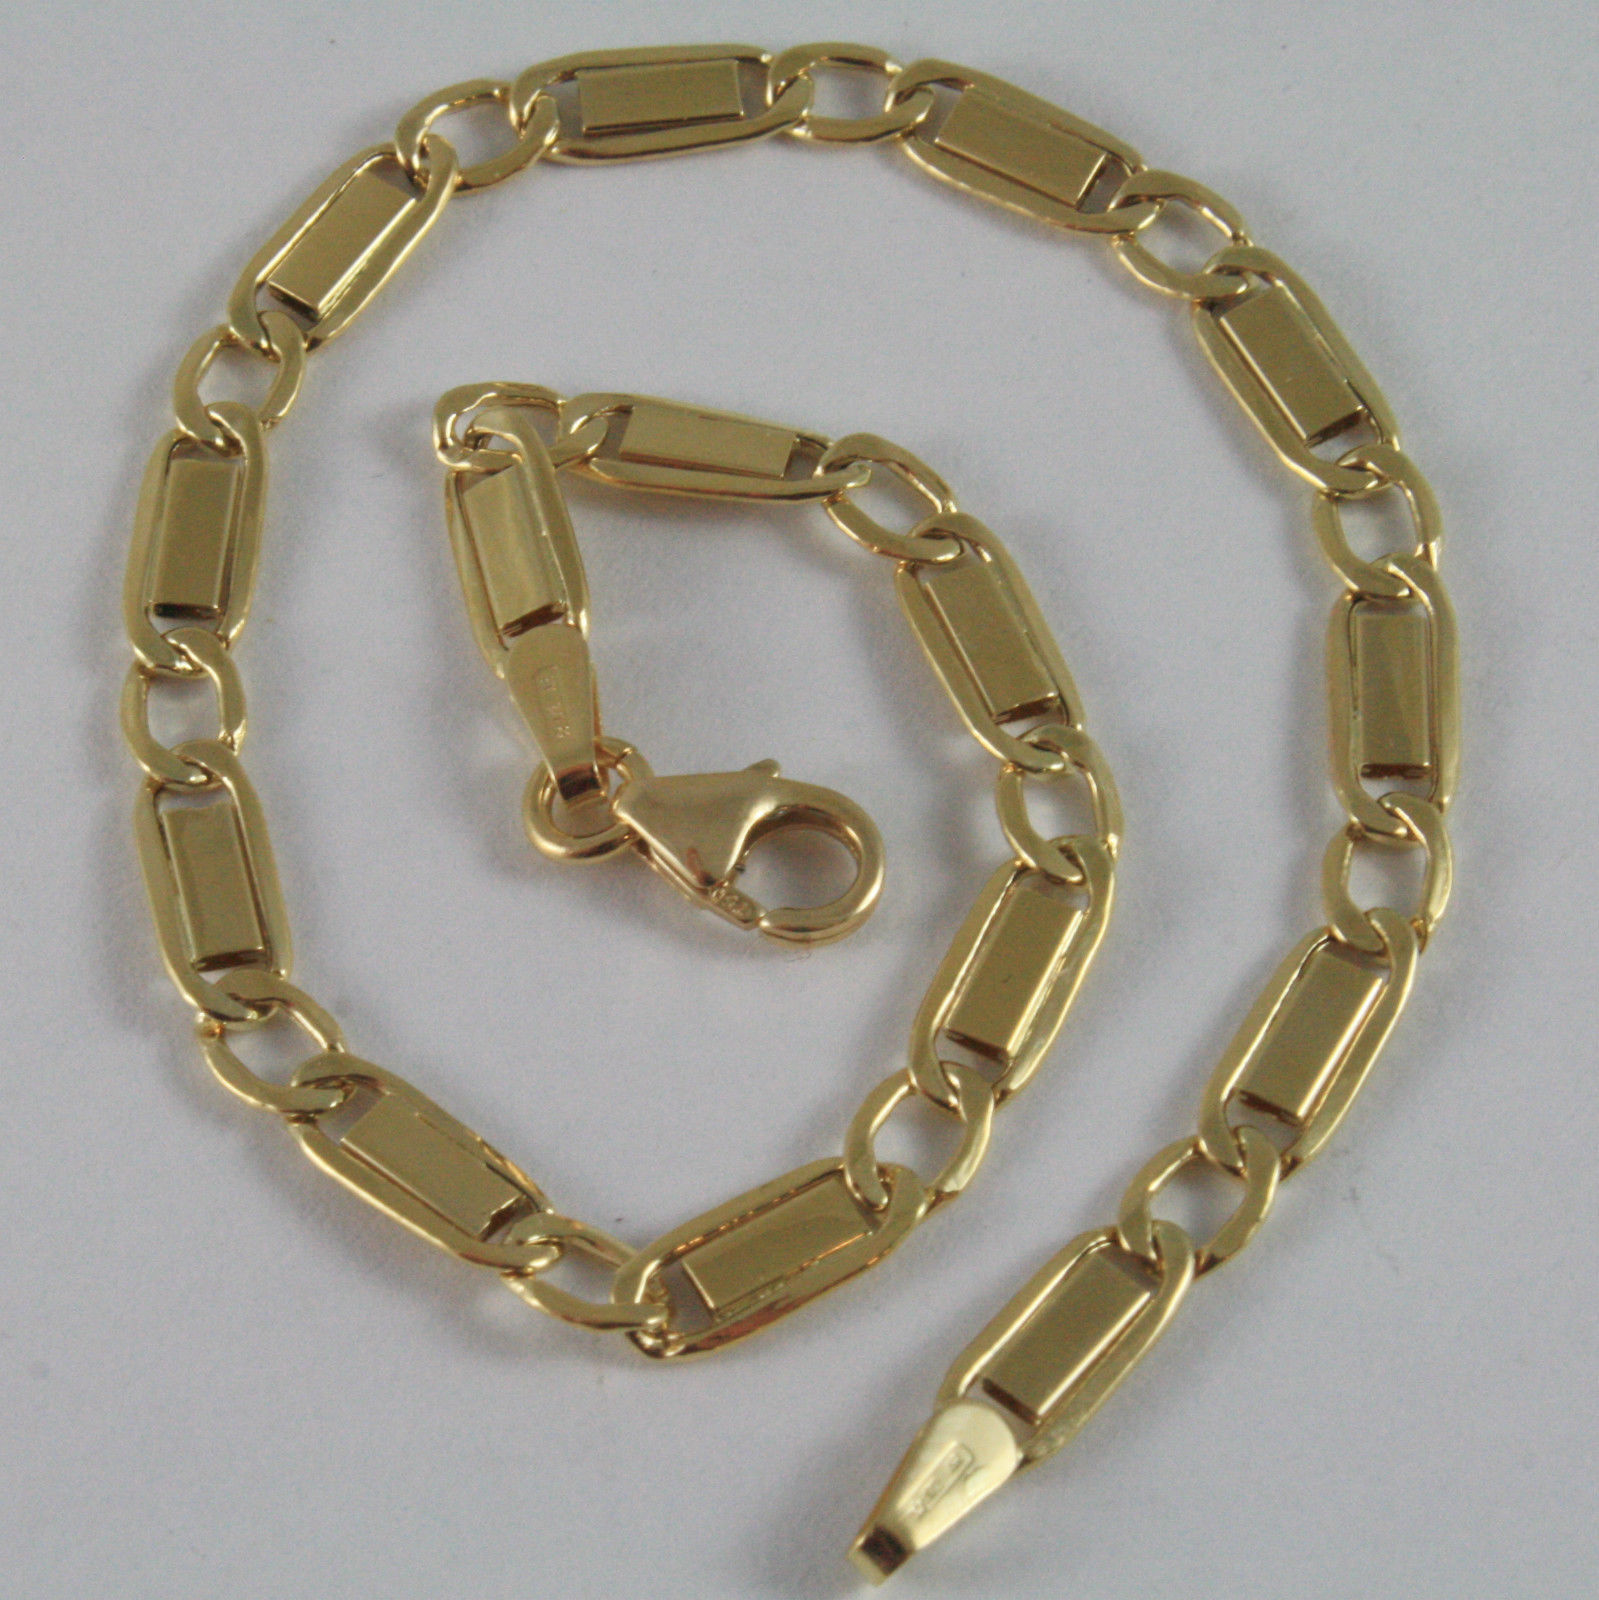 SOLID 18K YELLOW GOLD BRACELET WITH FLAT ALTERNATE 4 MM OVAL LINK, MADE IN ITALY